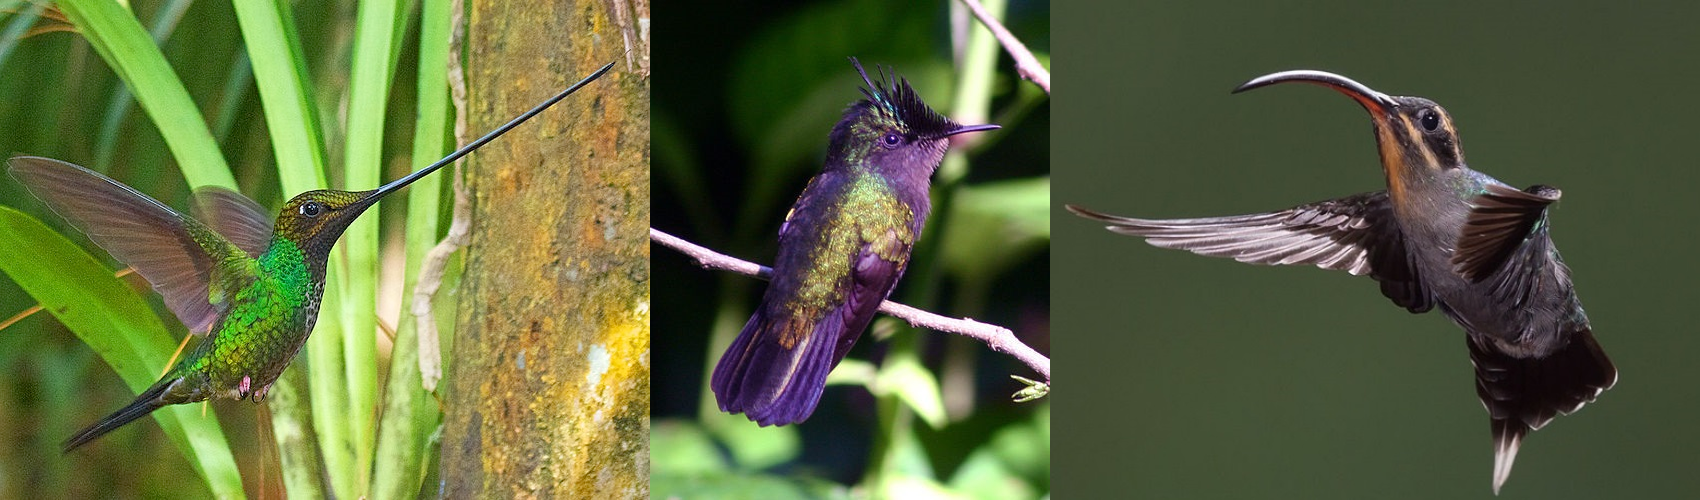 Coevolution Of Hummingbirds And Flowers Ask A Biologist